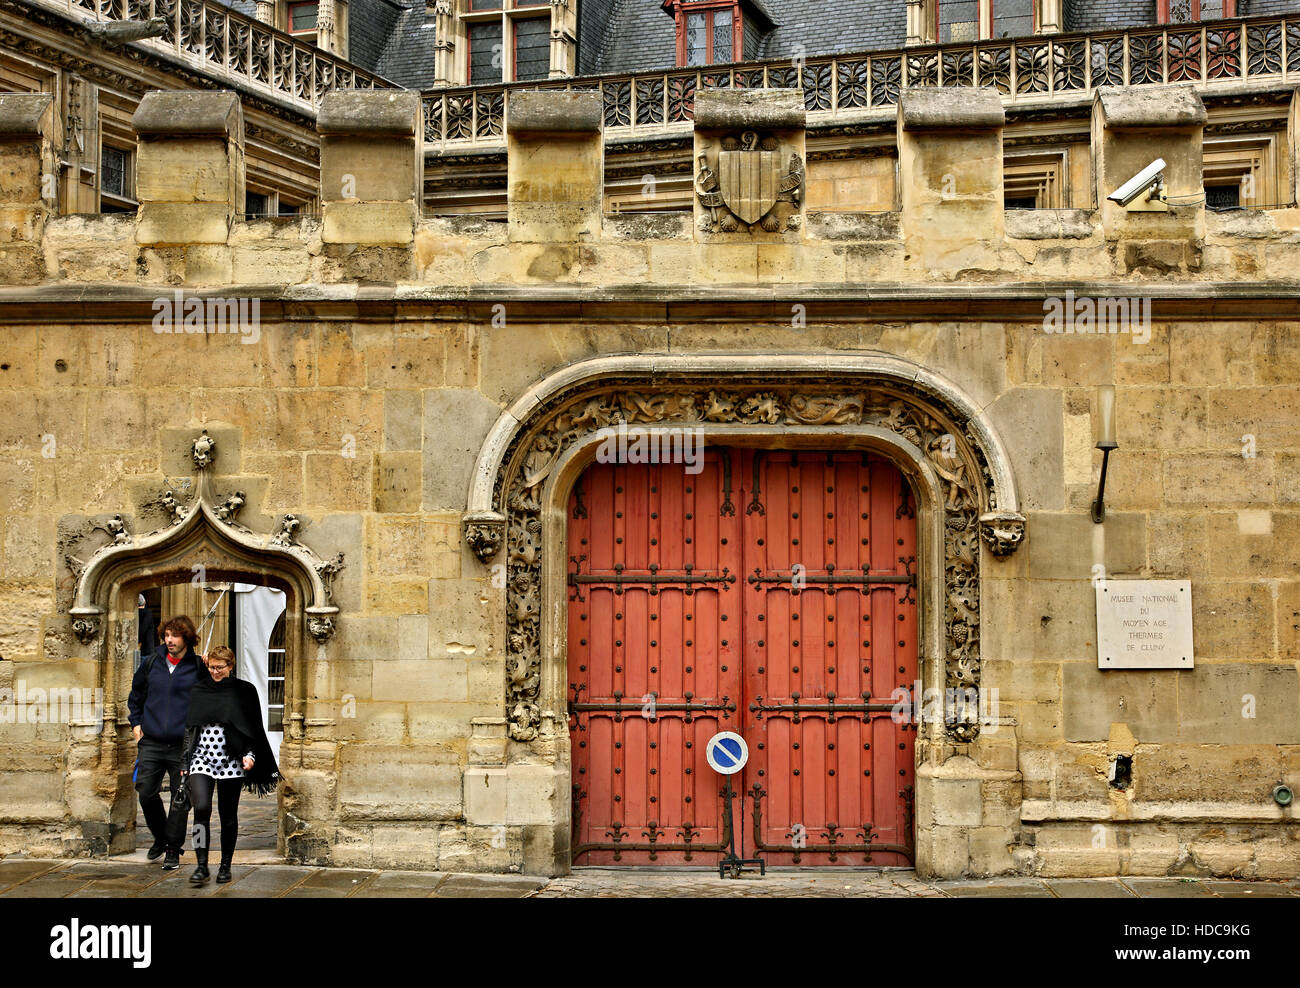 The entrance of the Medieval Museum (Musée national du Moyen Âge- also known as 'Musée de Cluny'), - Stock Image